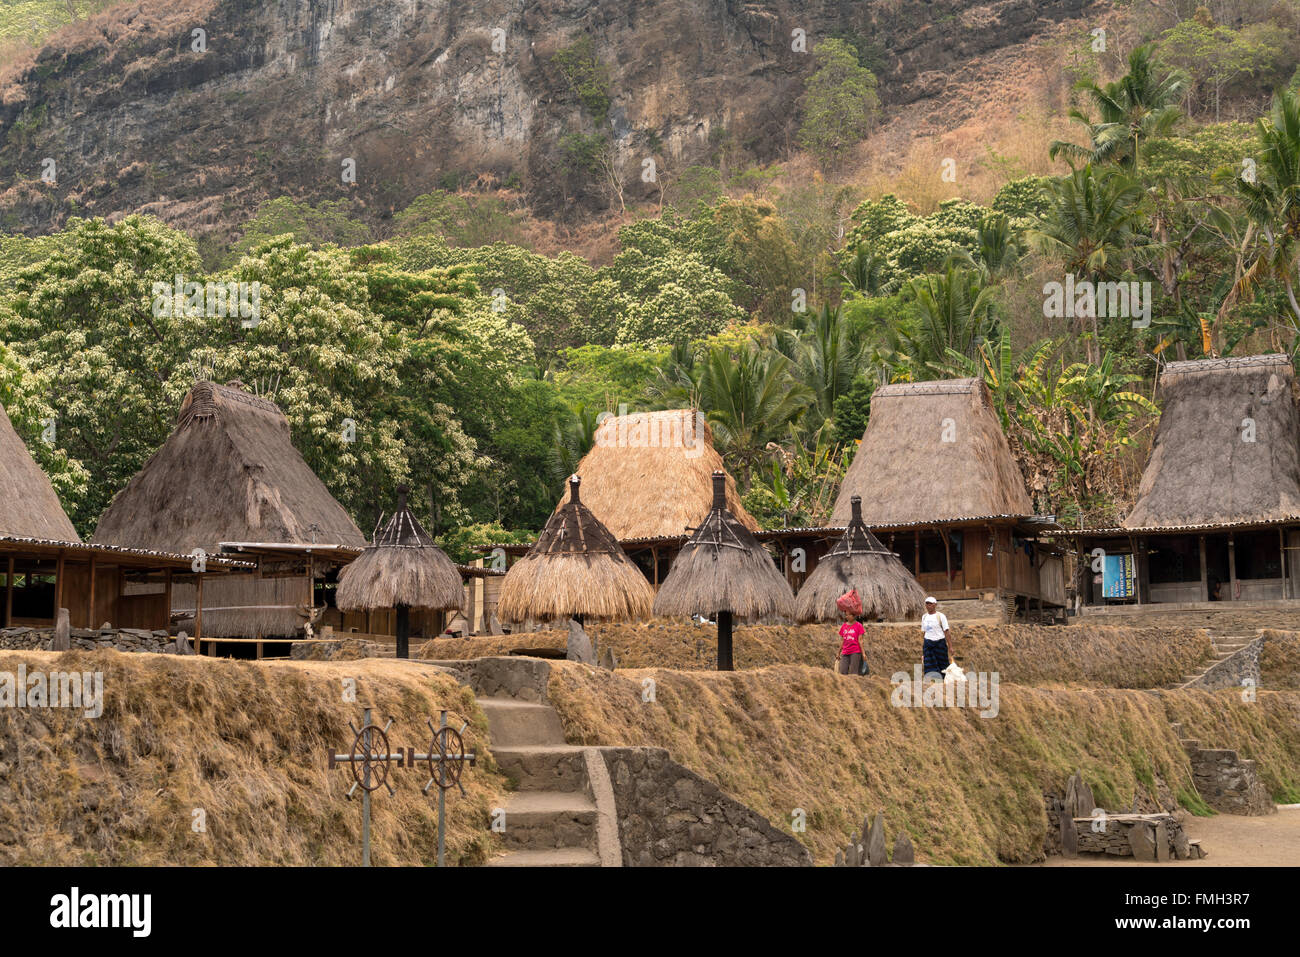 traditional high thatch-roofed houses and shrines in the Ngada village Bena near Bajawa, Flores, Indonesia, Asia - Stock Image